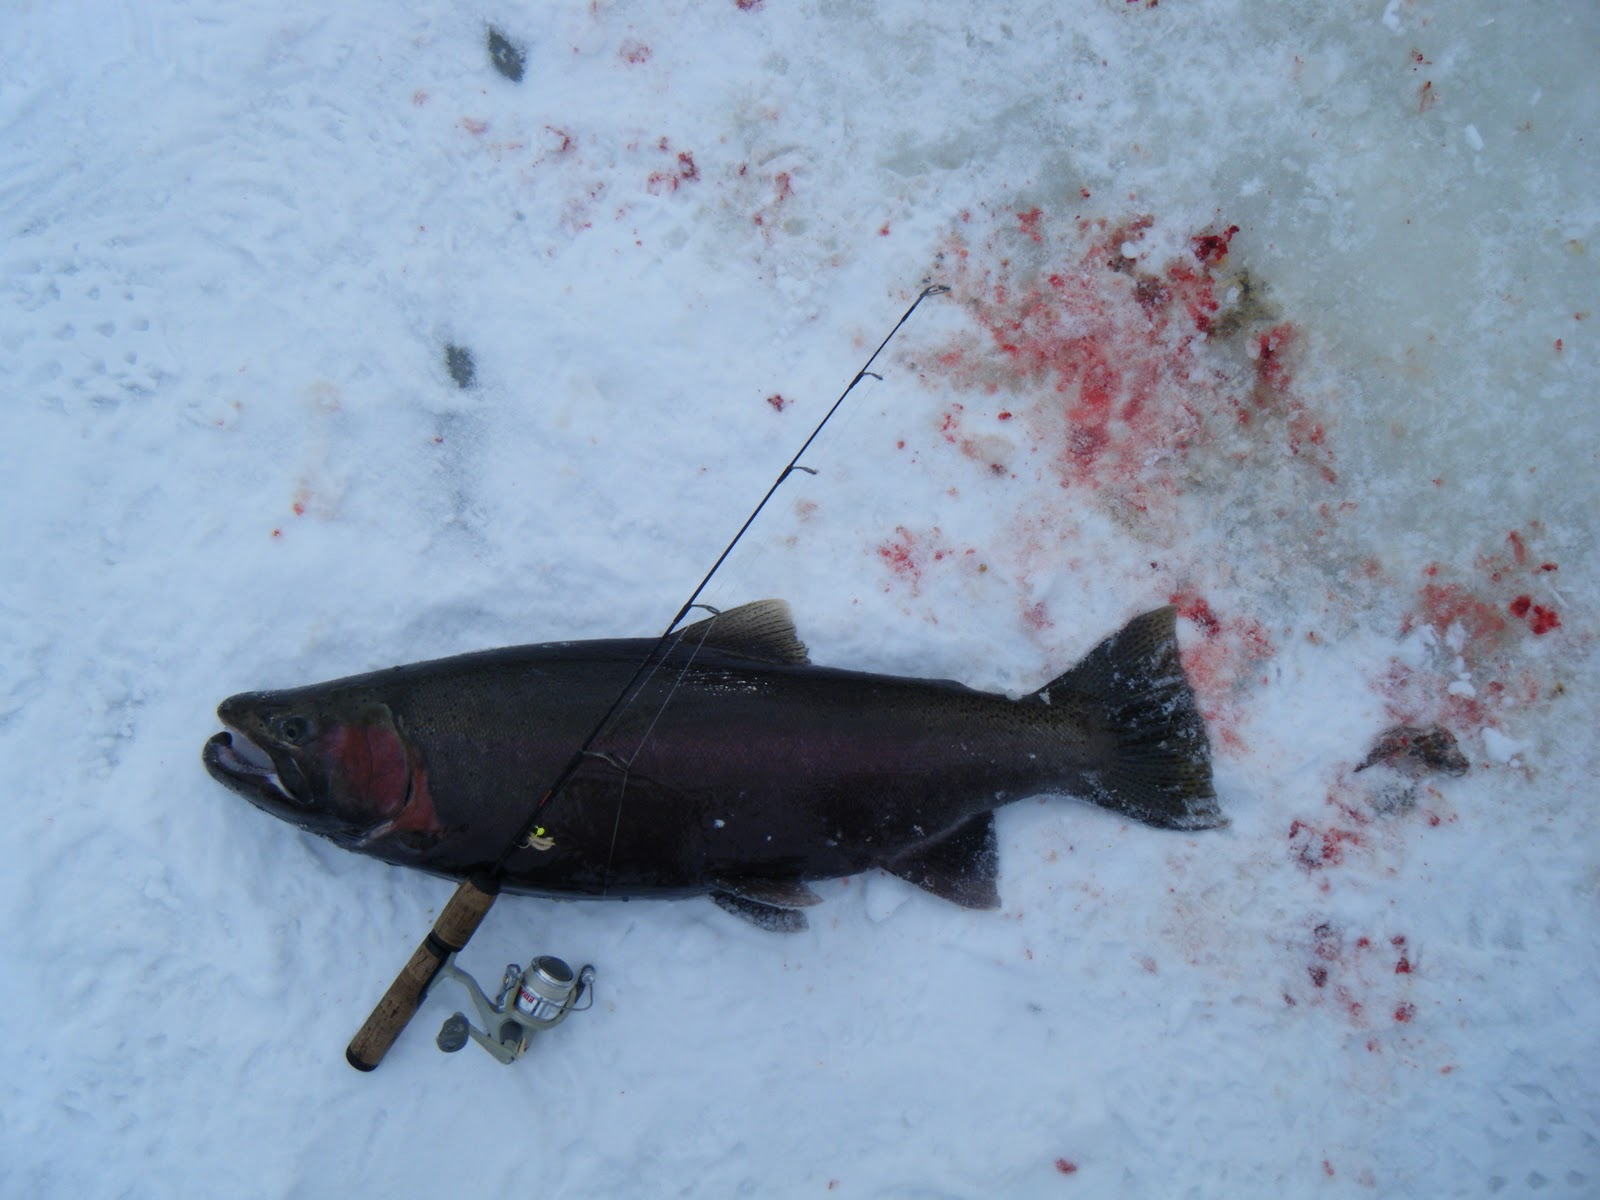 Wisconsin fishing reports ice fishing for great lakes trout for Lake trout ice fishing lures